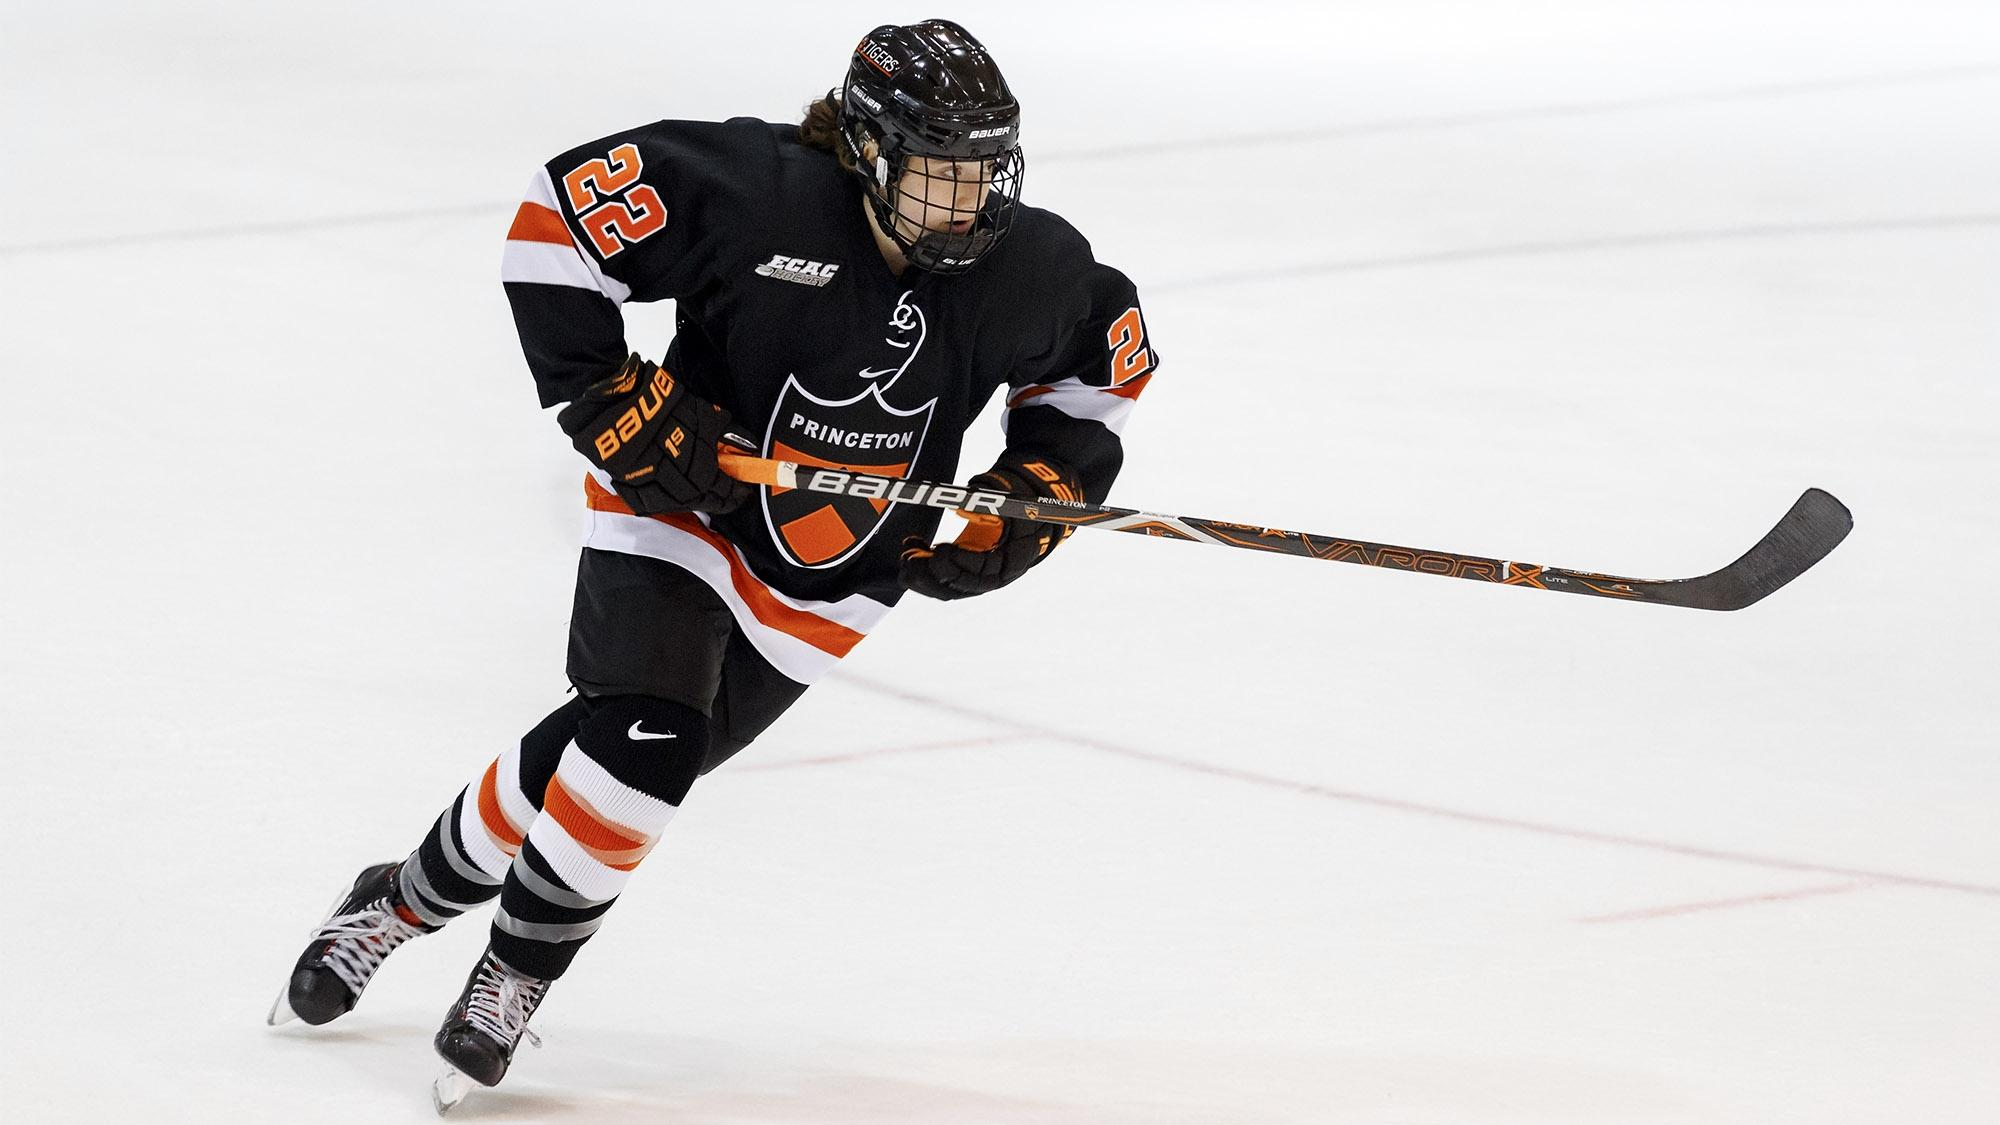 Maggie Connors was on fire for Princeton this weekend.